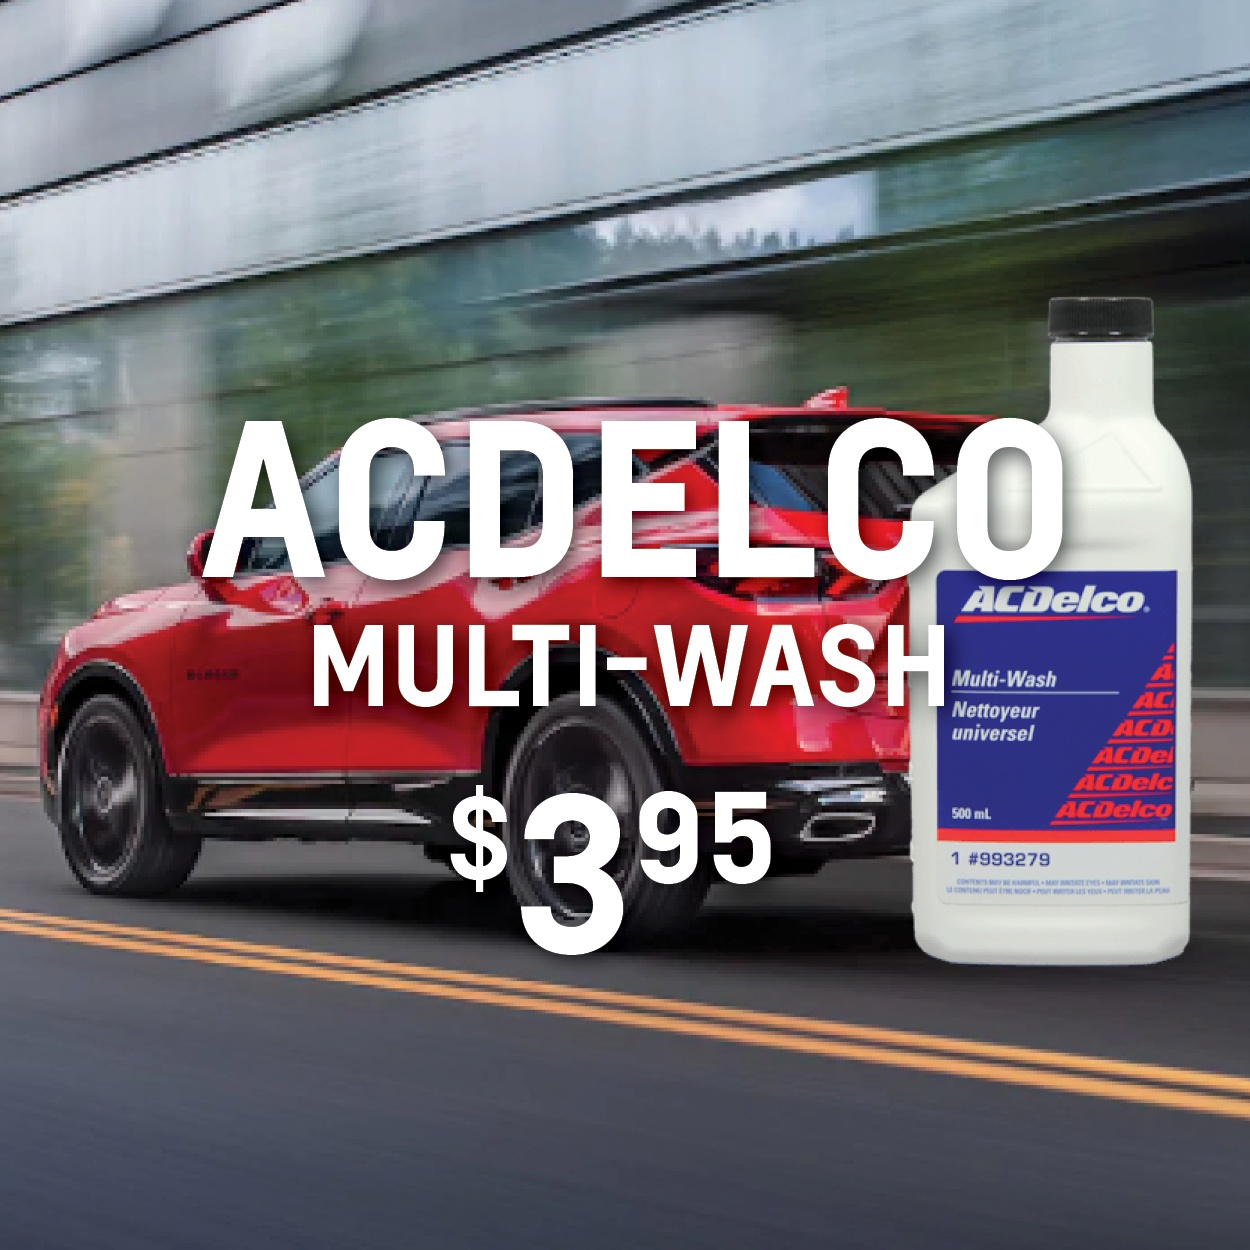 ACDelco Multi-Wash